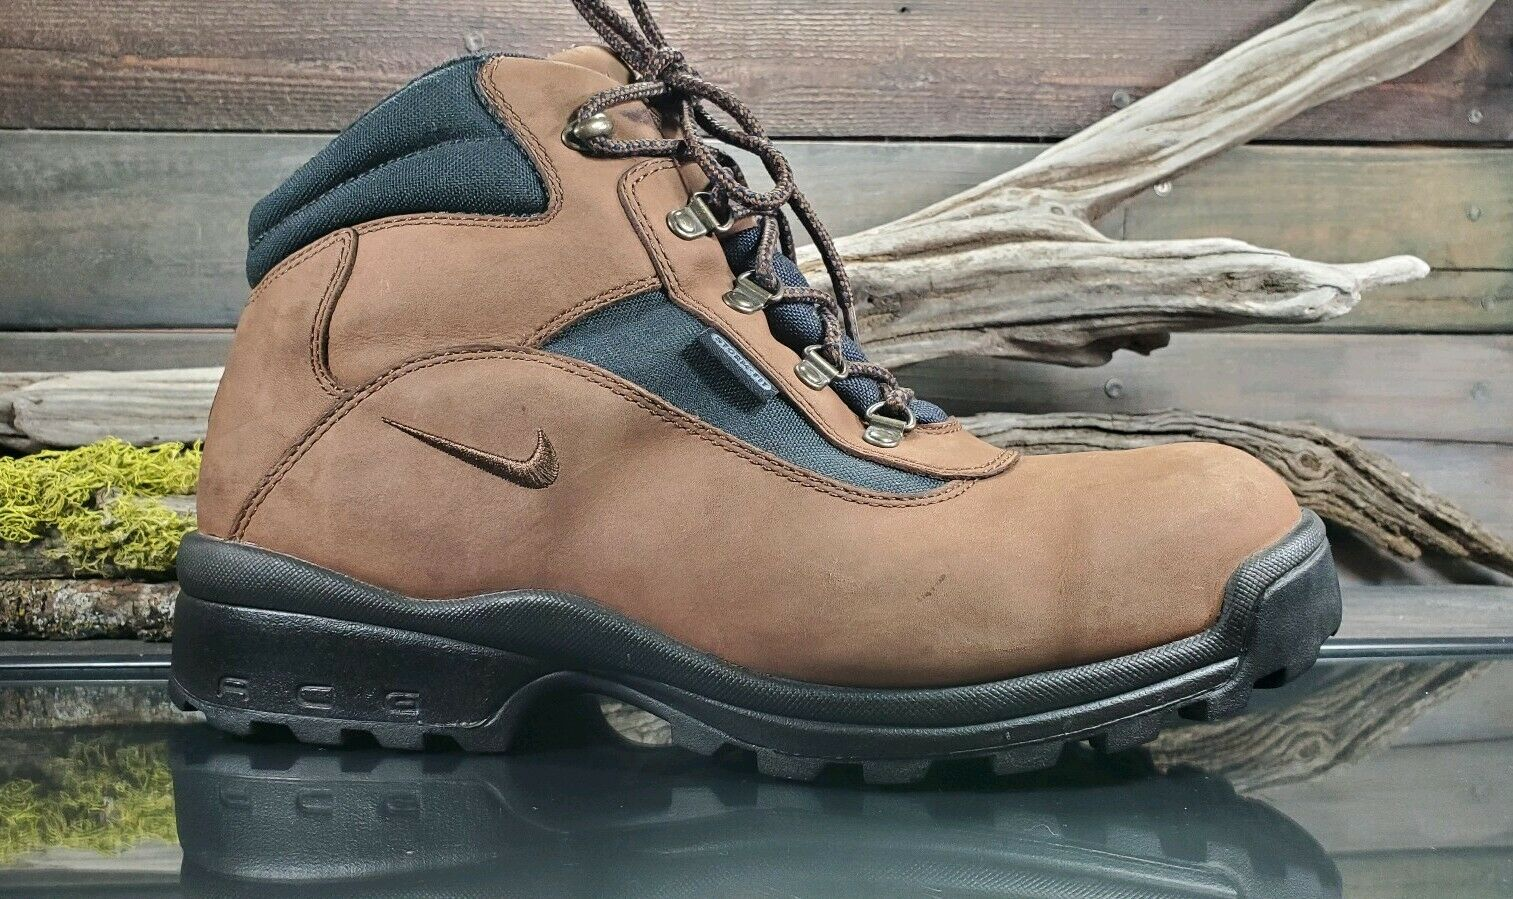 VTG Nike ACG Mens Sz 12 US Waterproof All Trac Hiking Trail  Brown Leather Boots